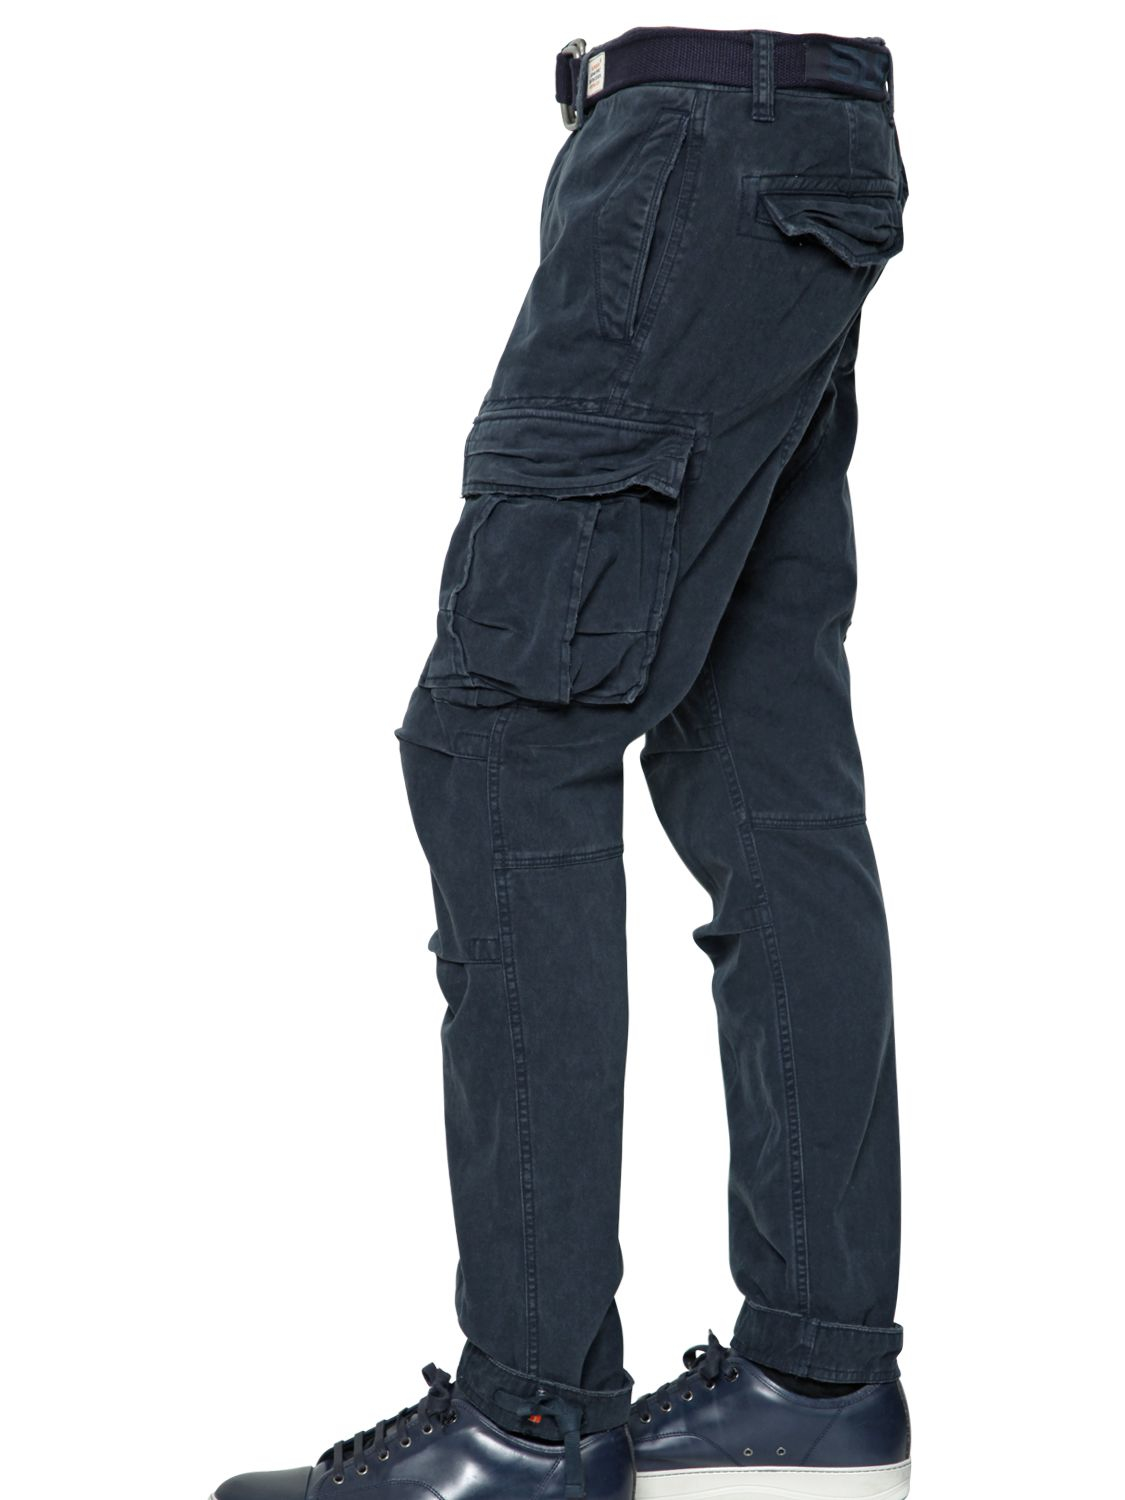 SixKa TGP Cargo Navy Work Pants with Neoprene Knee Pads. Sold by TACTICAL GEAR INC. $ $ Reebok Work Men's Leelap Suede Steel Toe Retro Jogger RB Wide Width Available - Navy